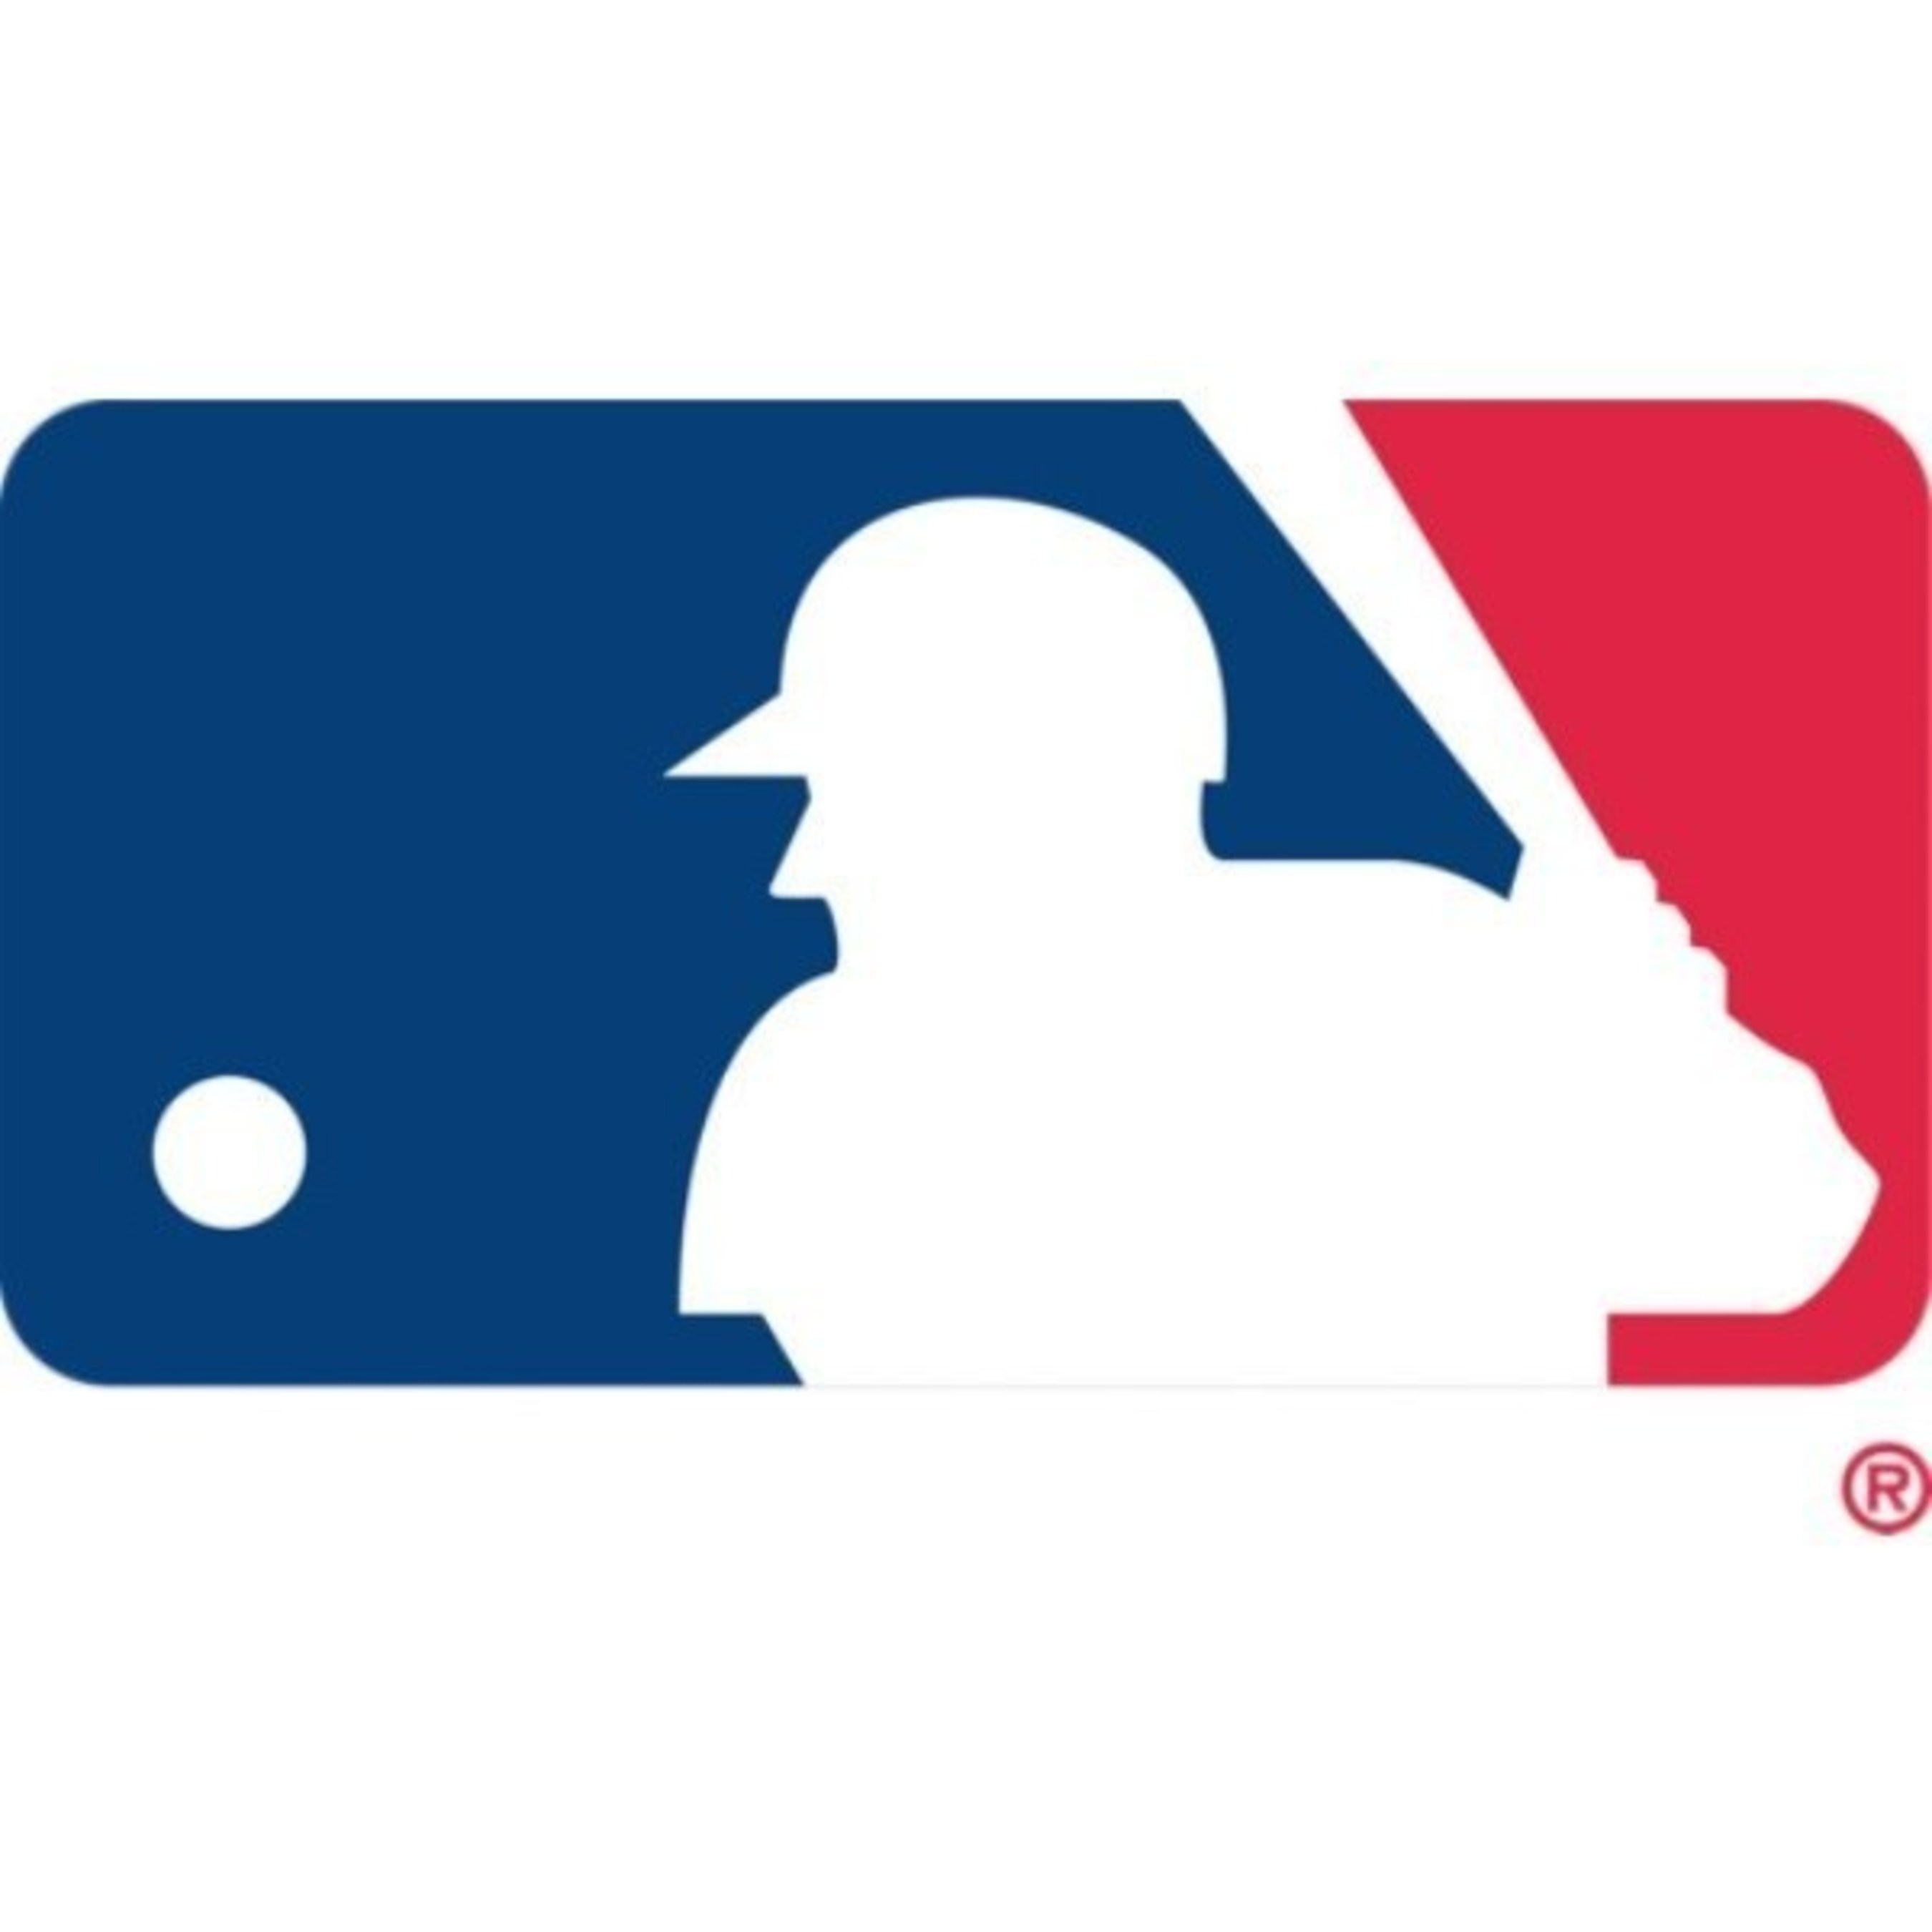 Maytag(R) Brand Cleans Up with New Deal as Official Washer and Dryer of Major League Baseball